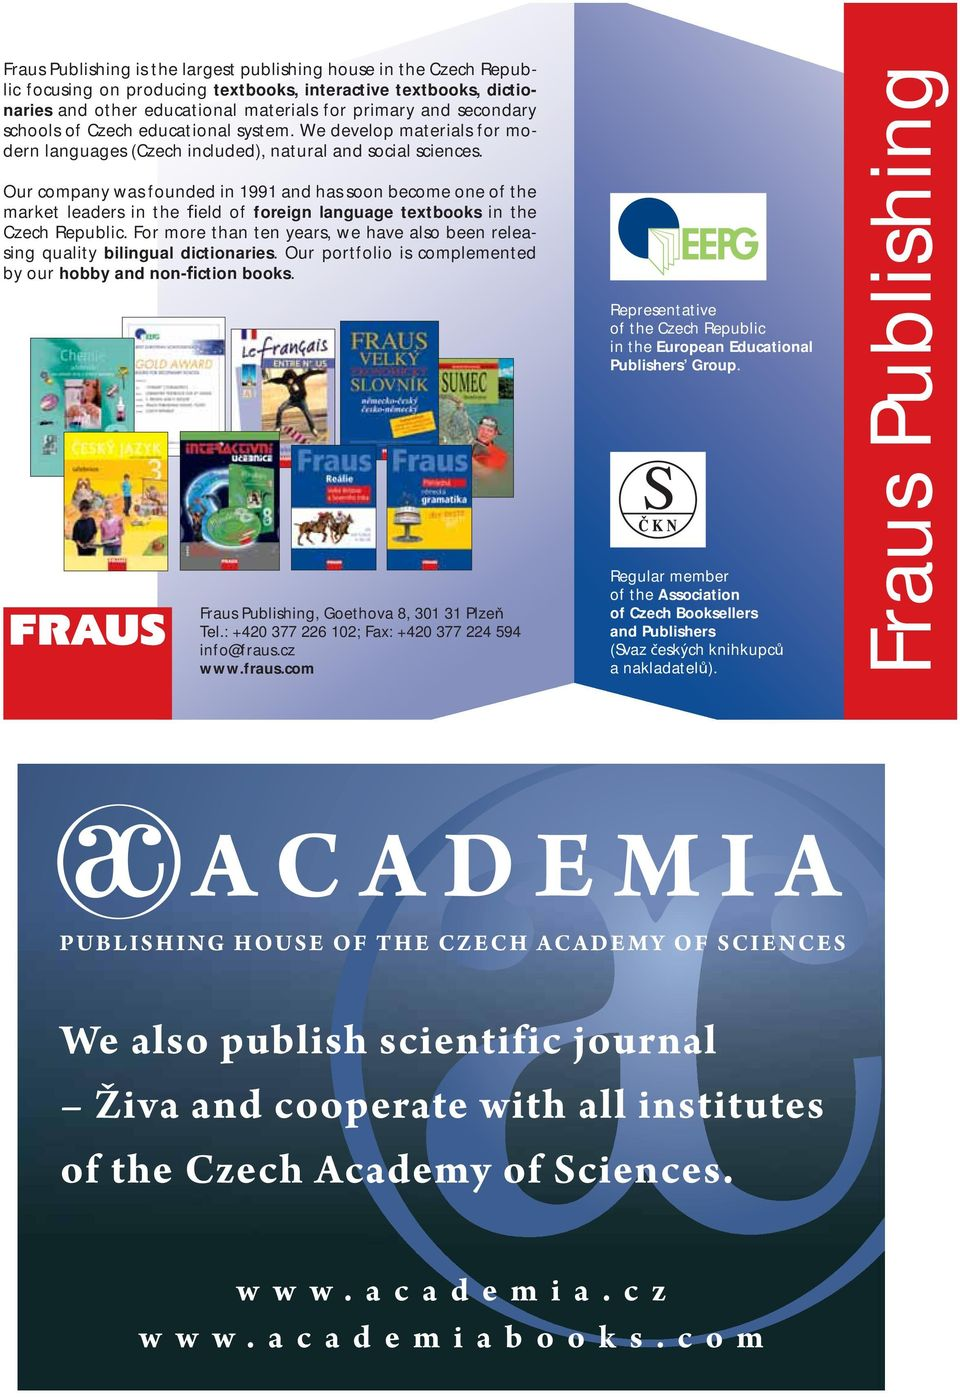 Our company was founded in 1991 and has soon become one of the market leaders in the eld of foreign language textbooks in the Czech Republic.